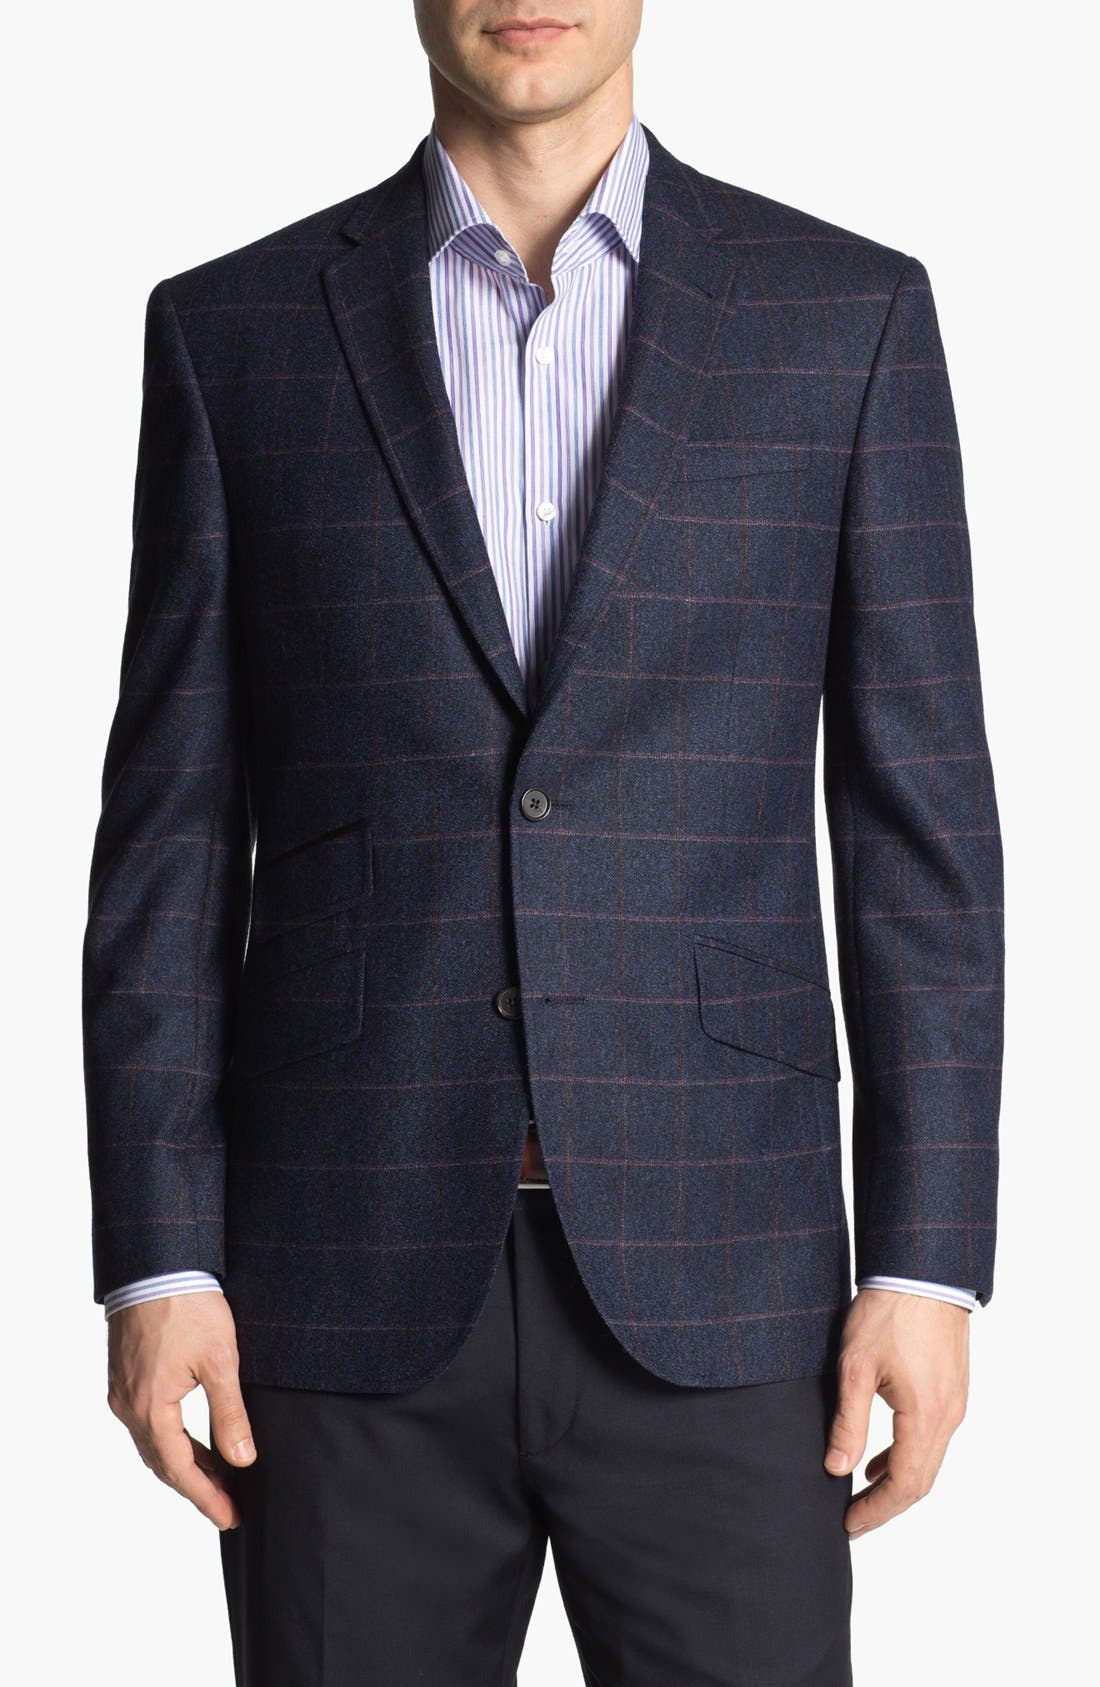 Main Image - Ted Baker London 'Jim' Trim Fit Plaid Sportcoat (Online Only)